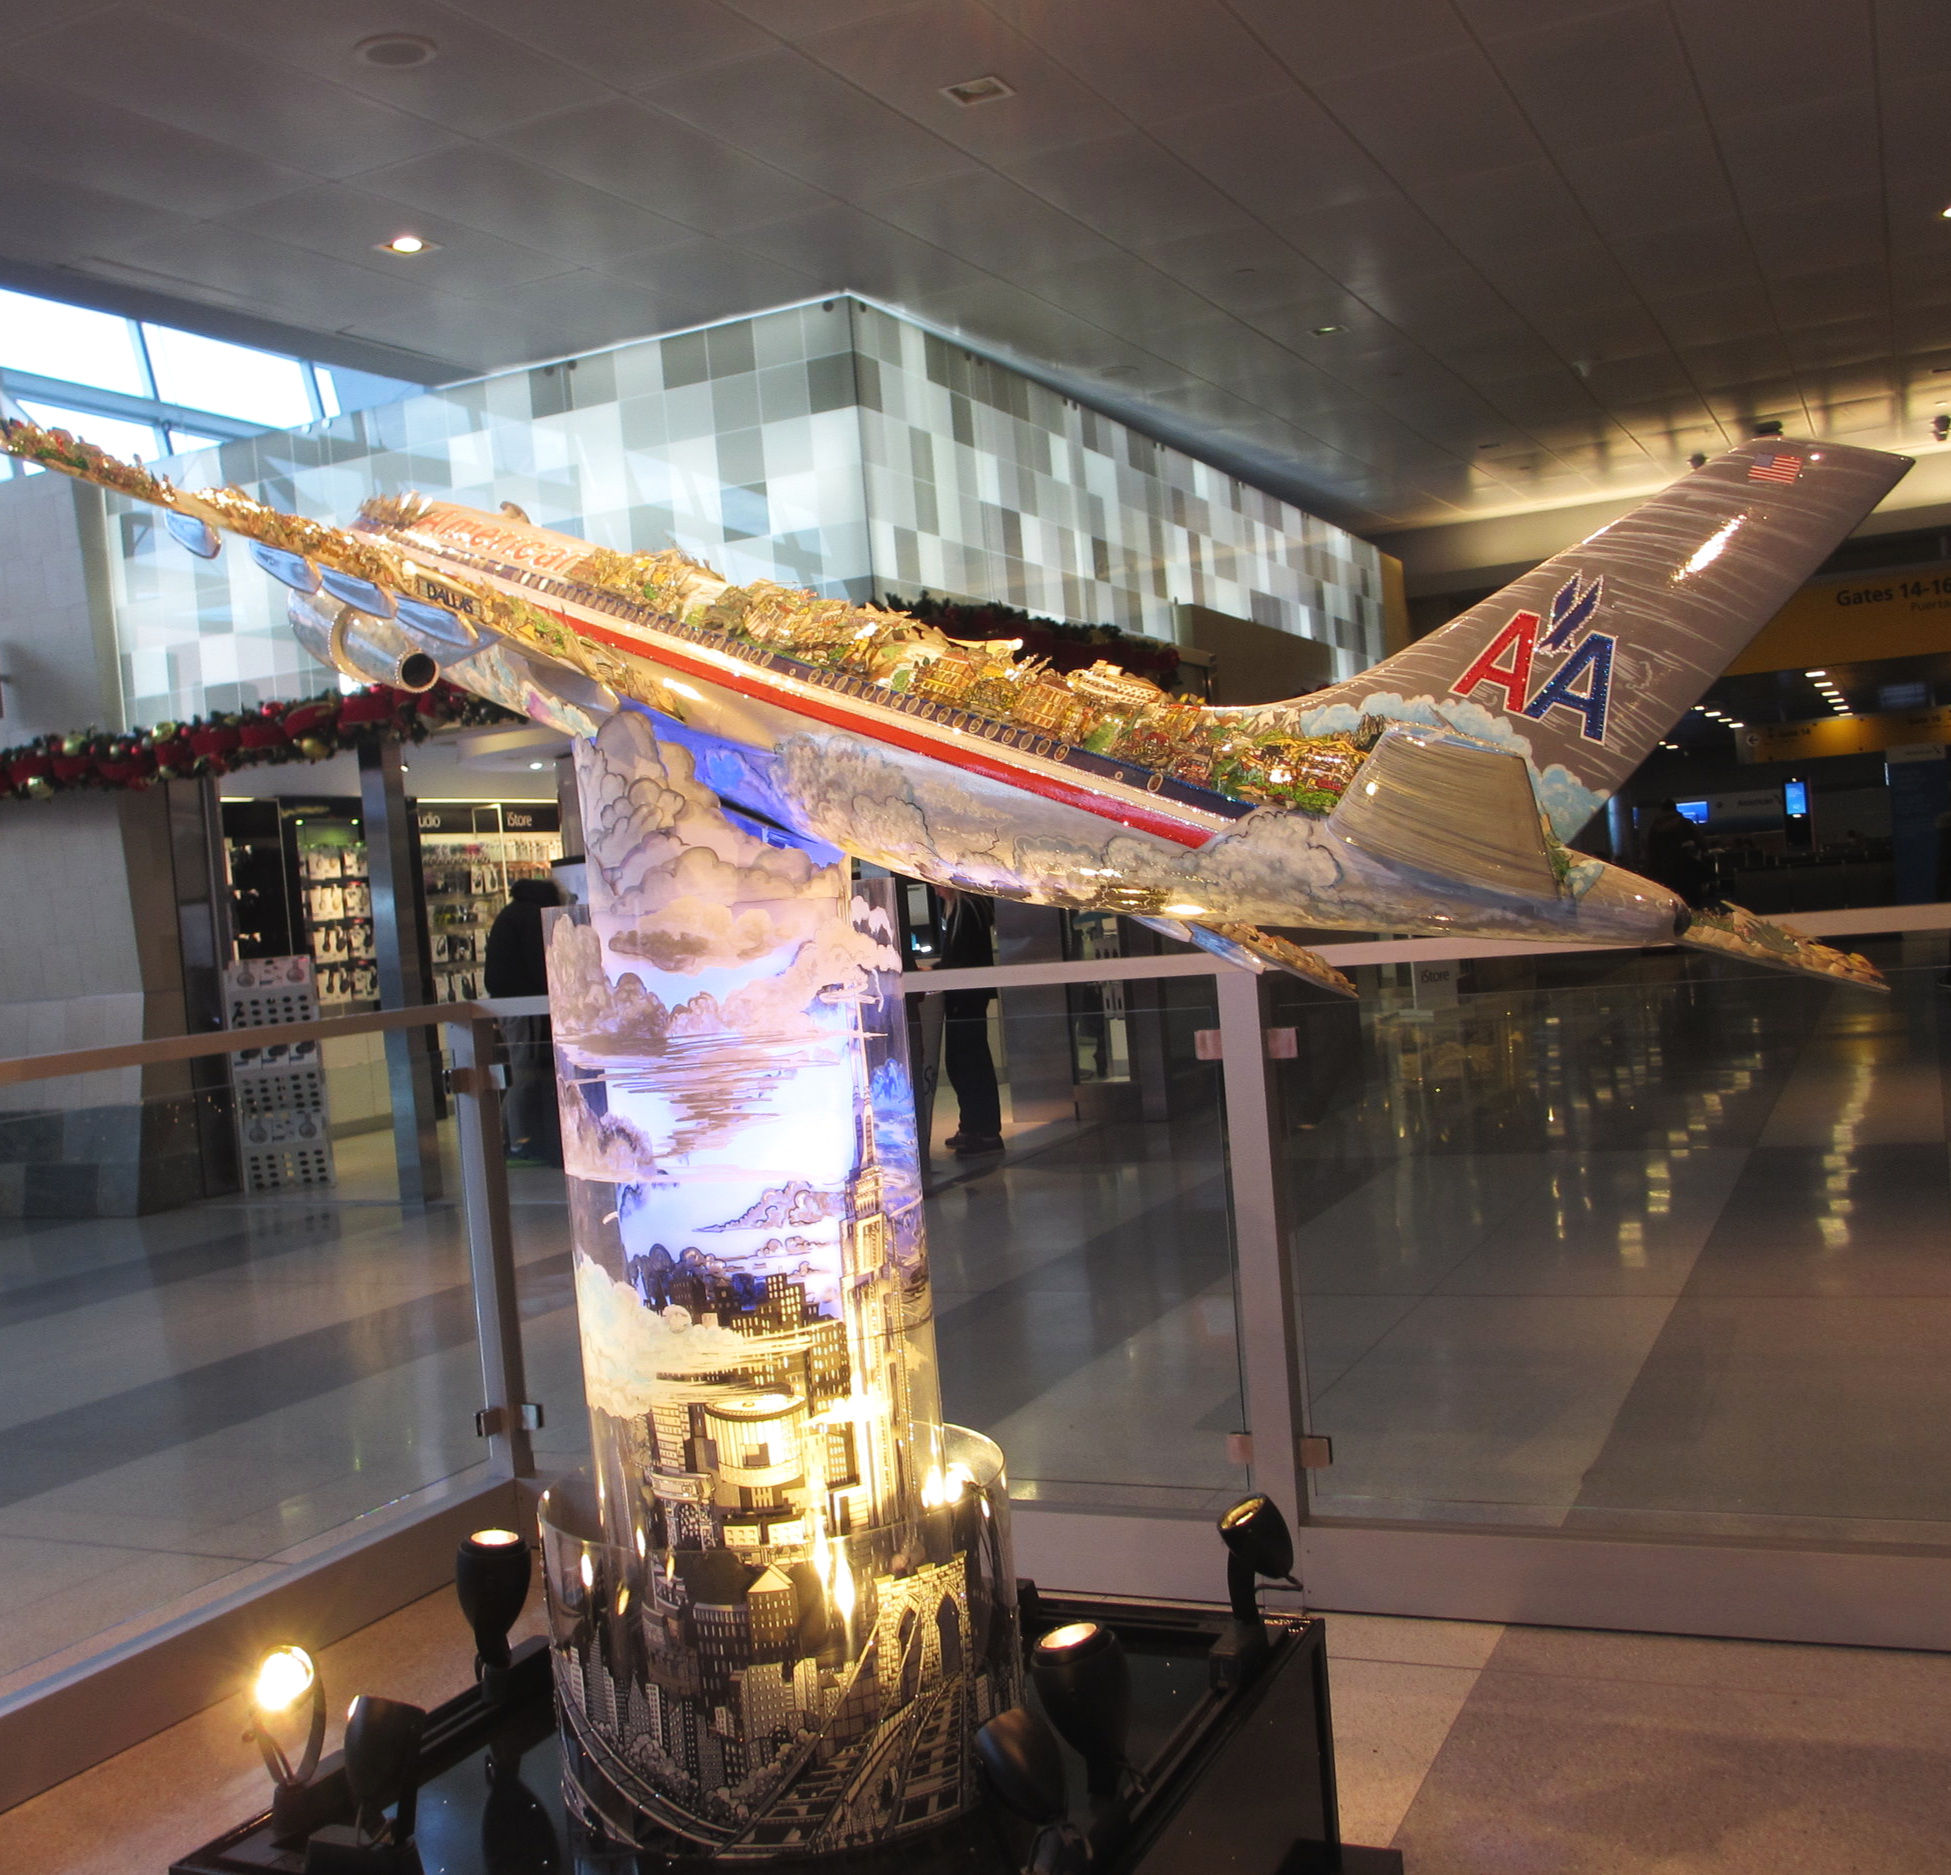 The AA sculpture at JFK takes you around the world in seconds